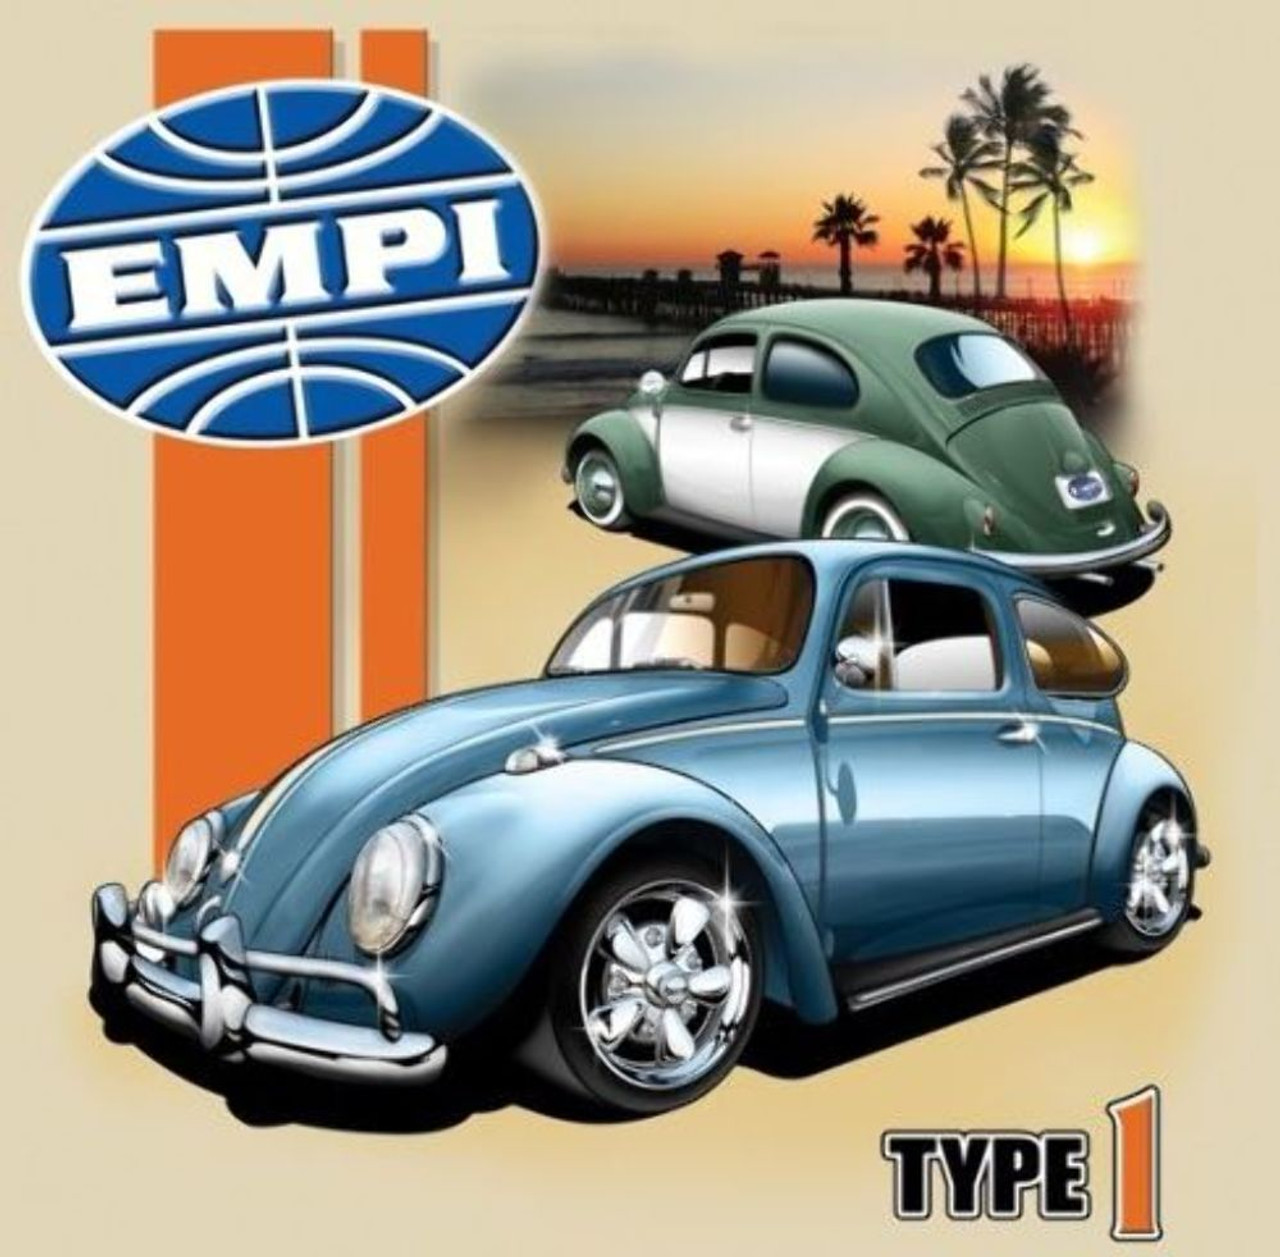 empi t shirt , vw volkswagen type 1 bug 100% cotton , large , 15empi t shirt , vw volkswagen type 1 bug 100% cotton , large ,